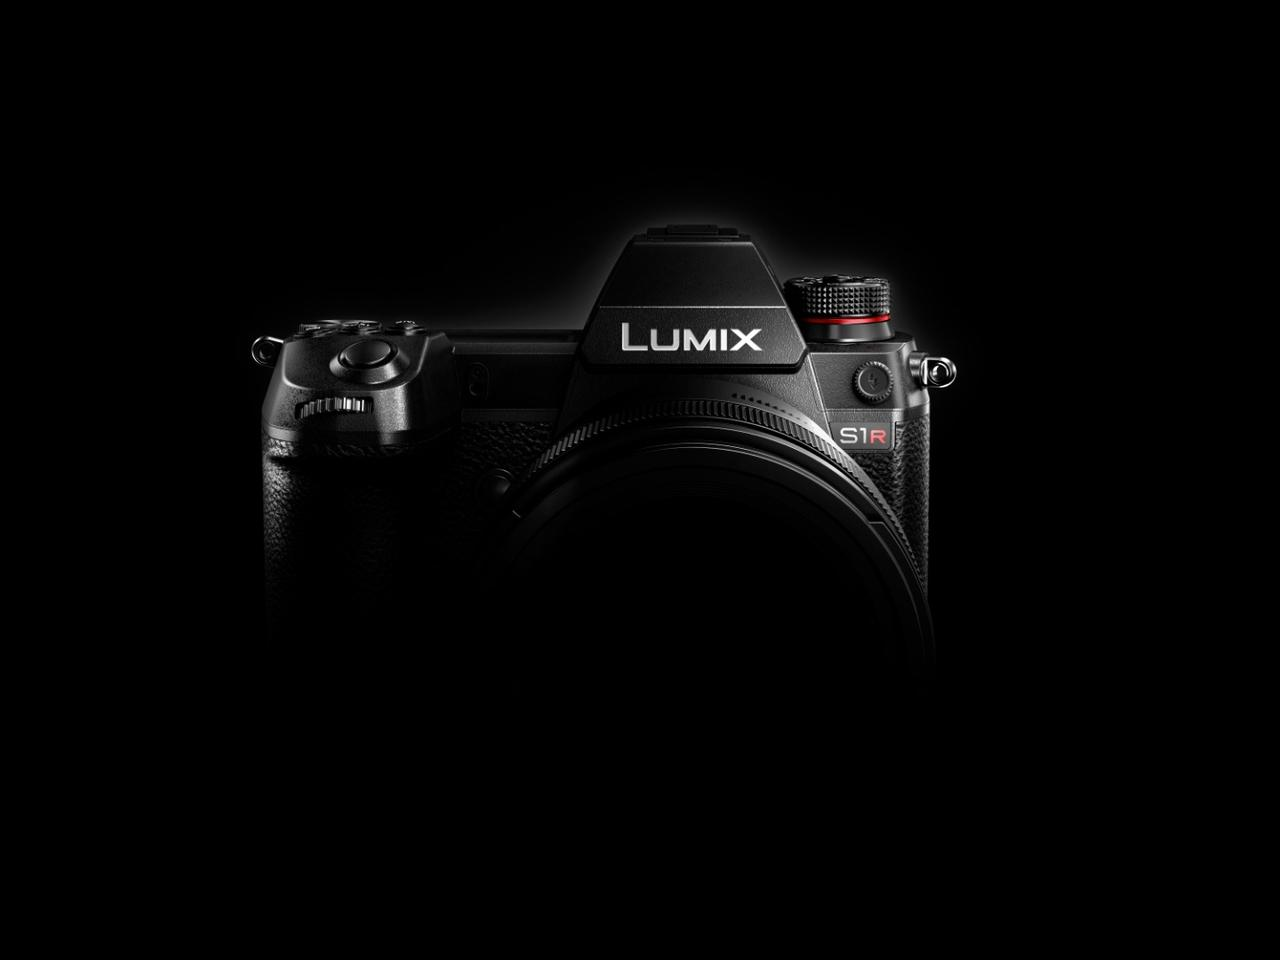 Panasonic is not giving too much away about its upcoming Lumix S full-frame mirrorless cameras